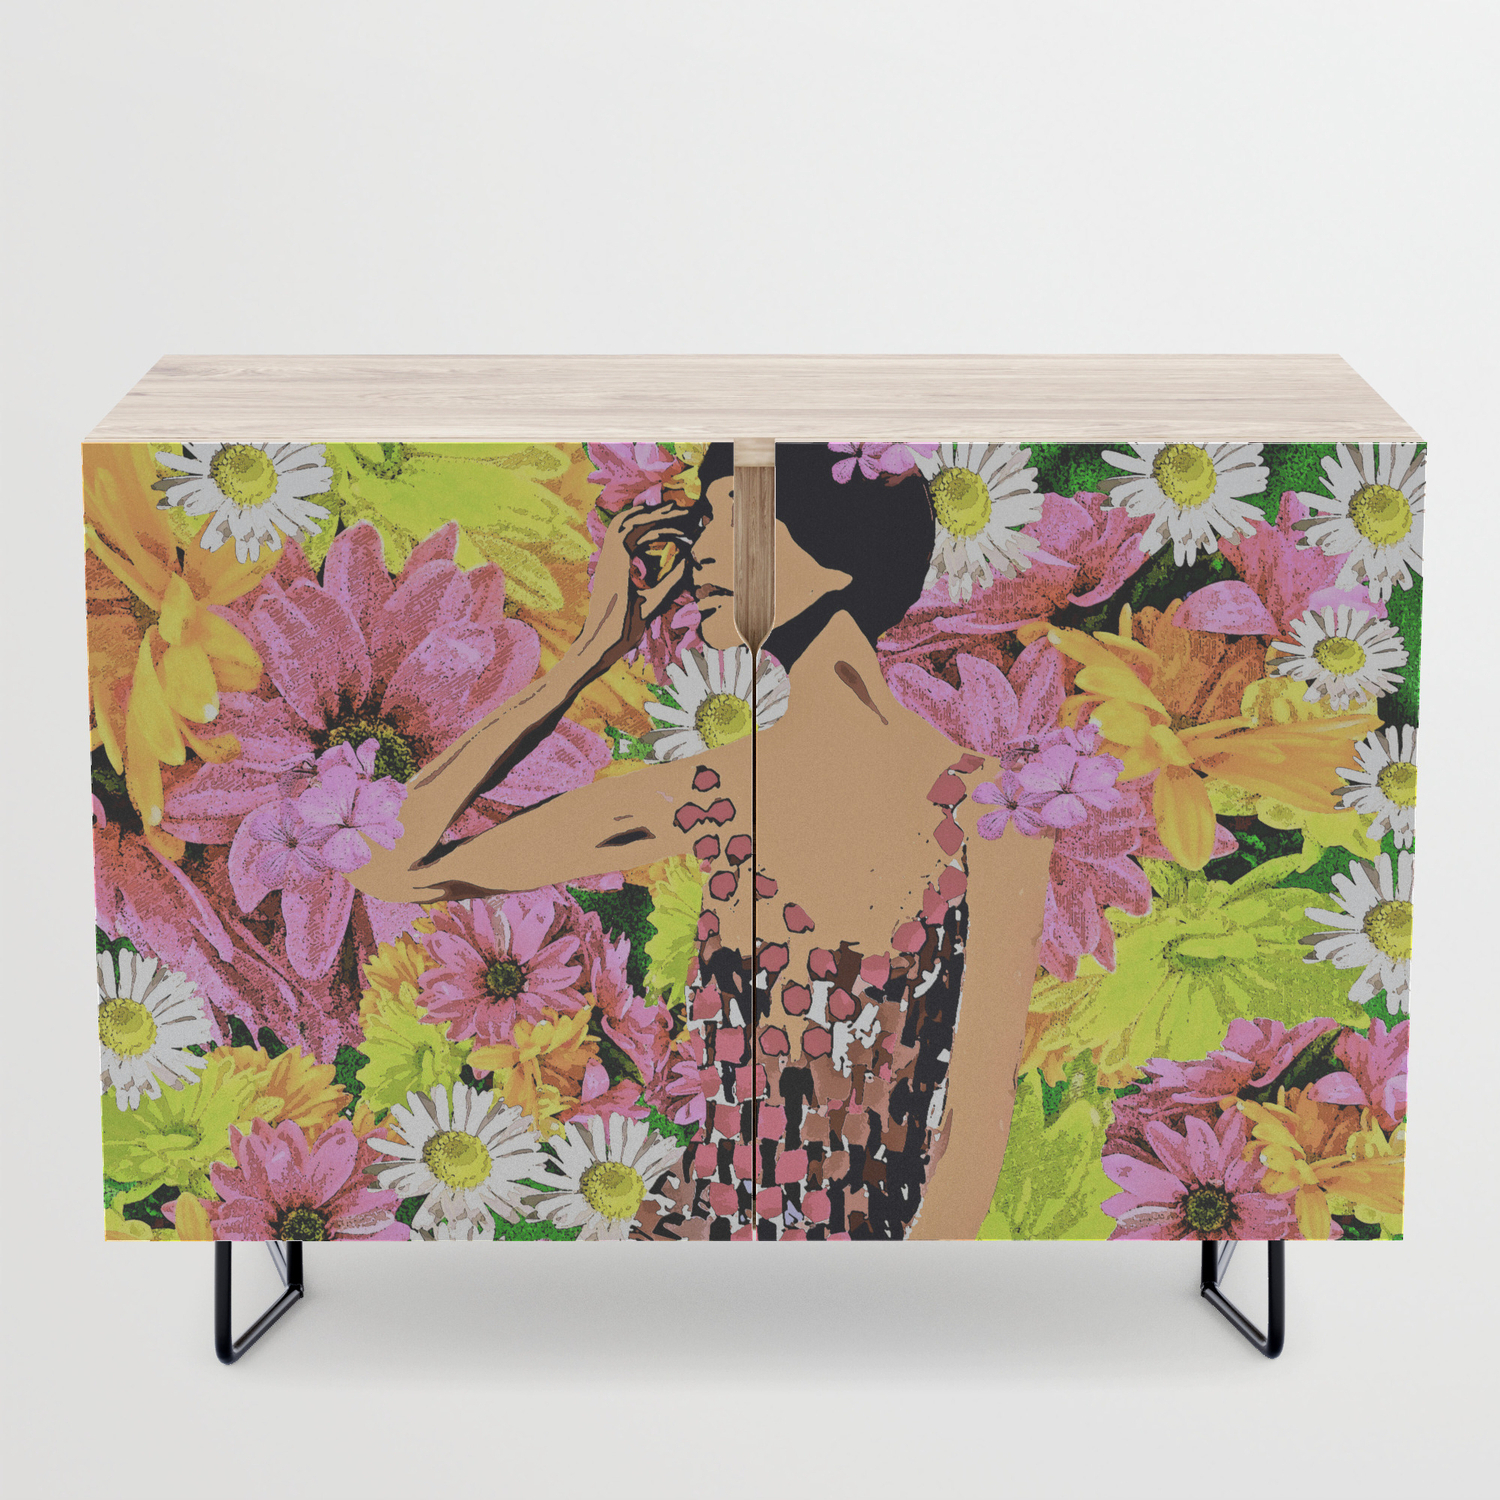 Luna Spring Time Beauty Woman Flower Child Credenza Intended For Floral Beauty Credenzas (View 3 of 20)